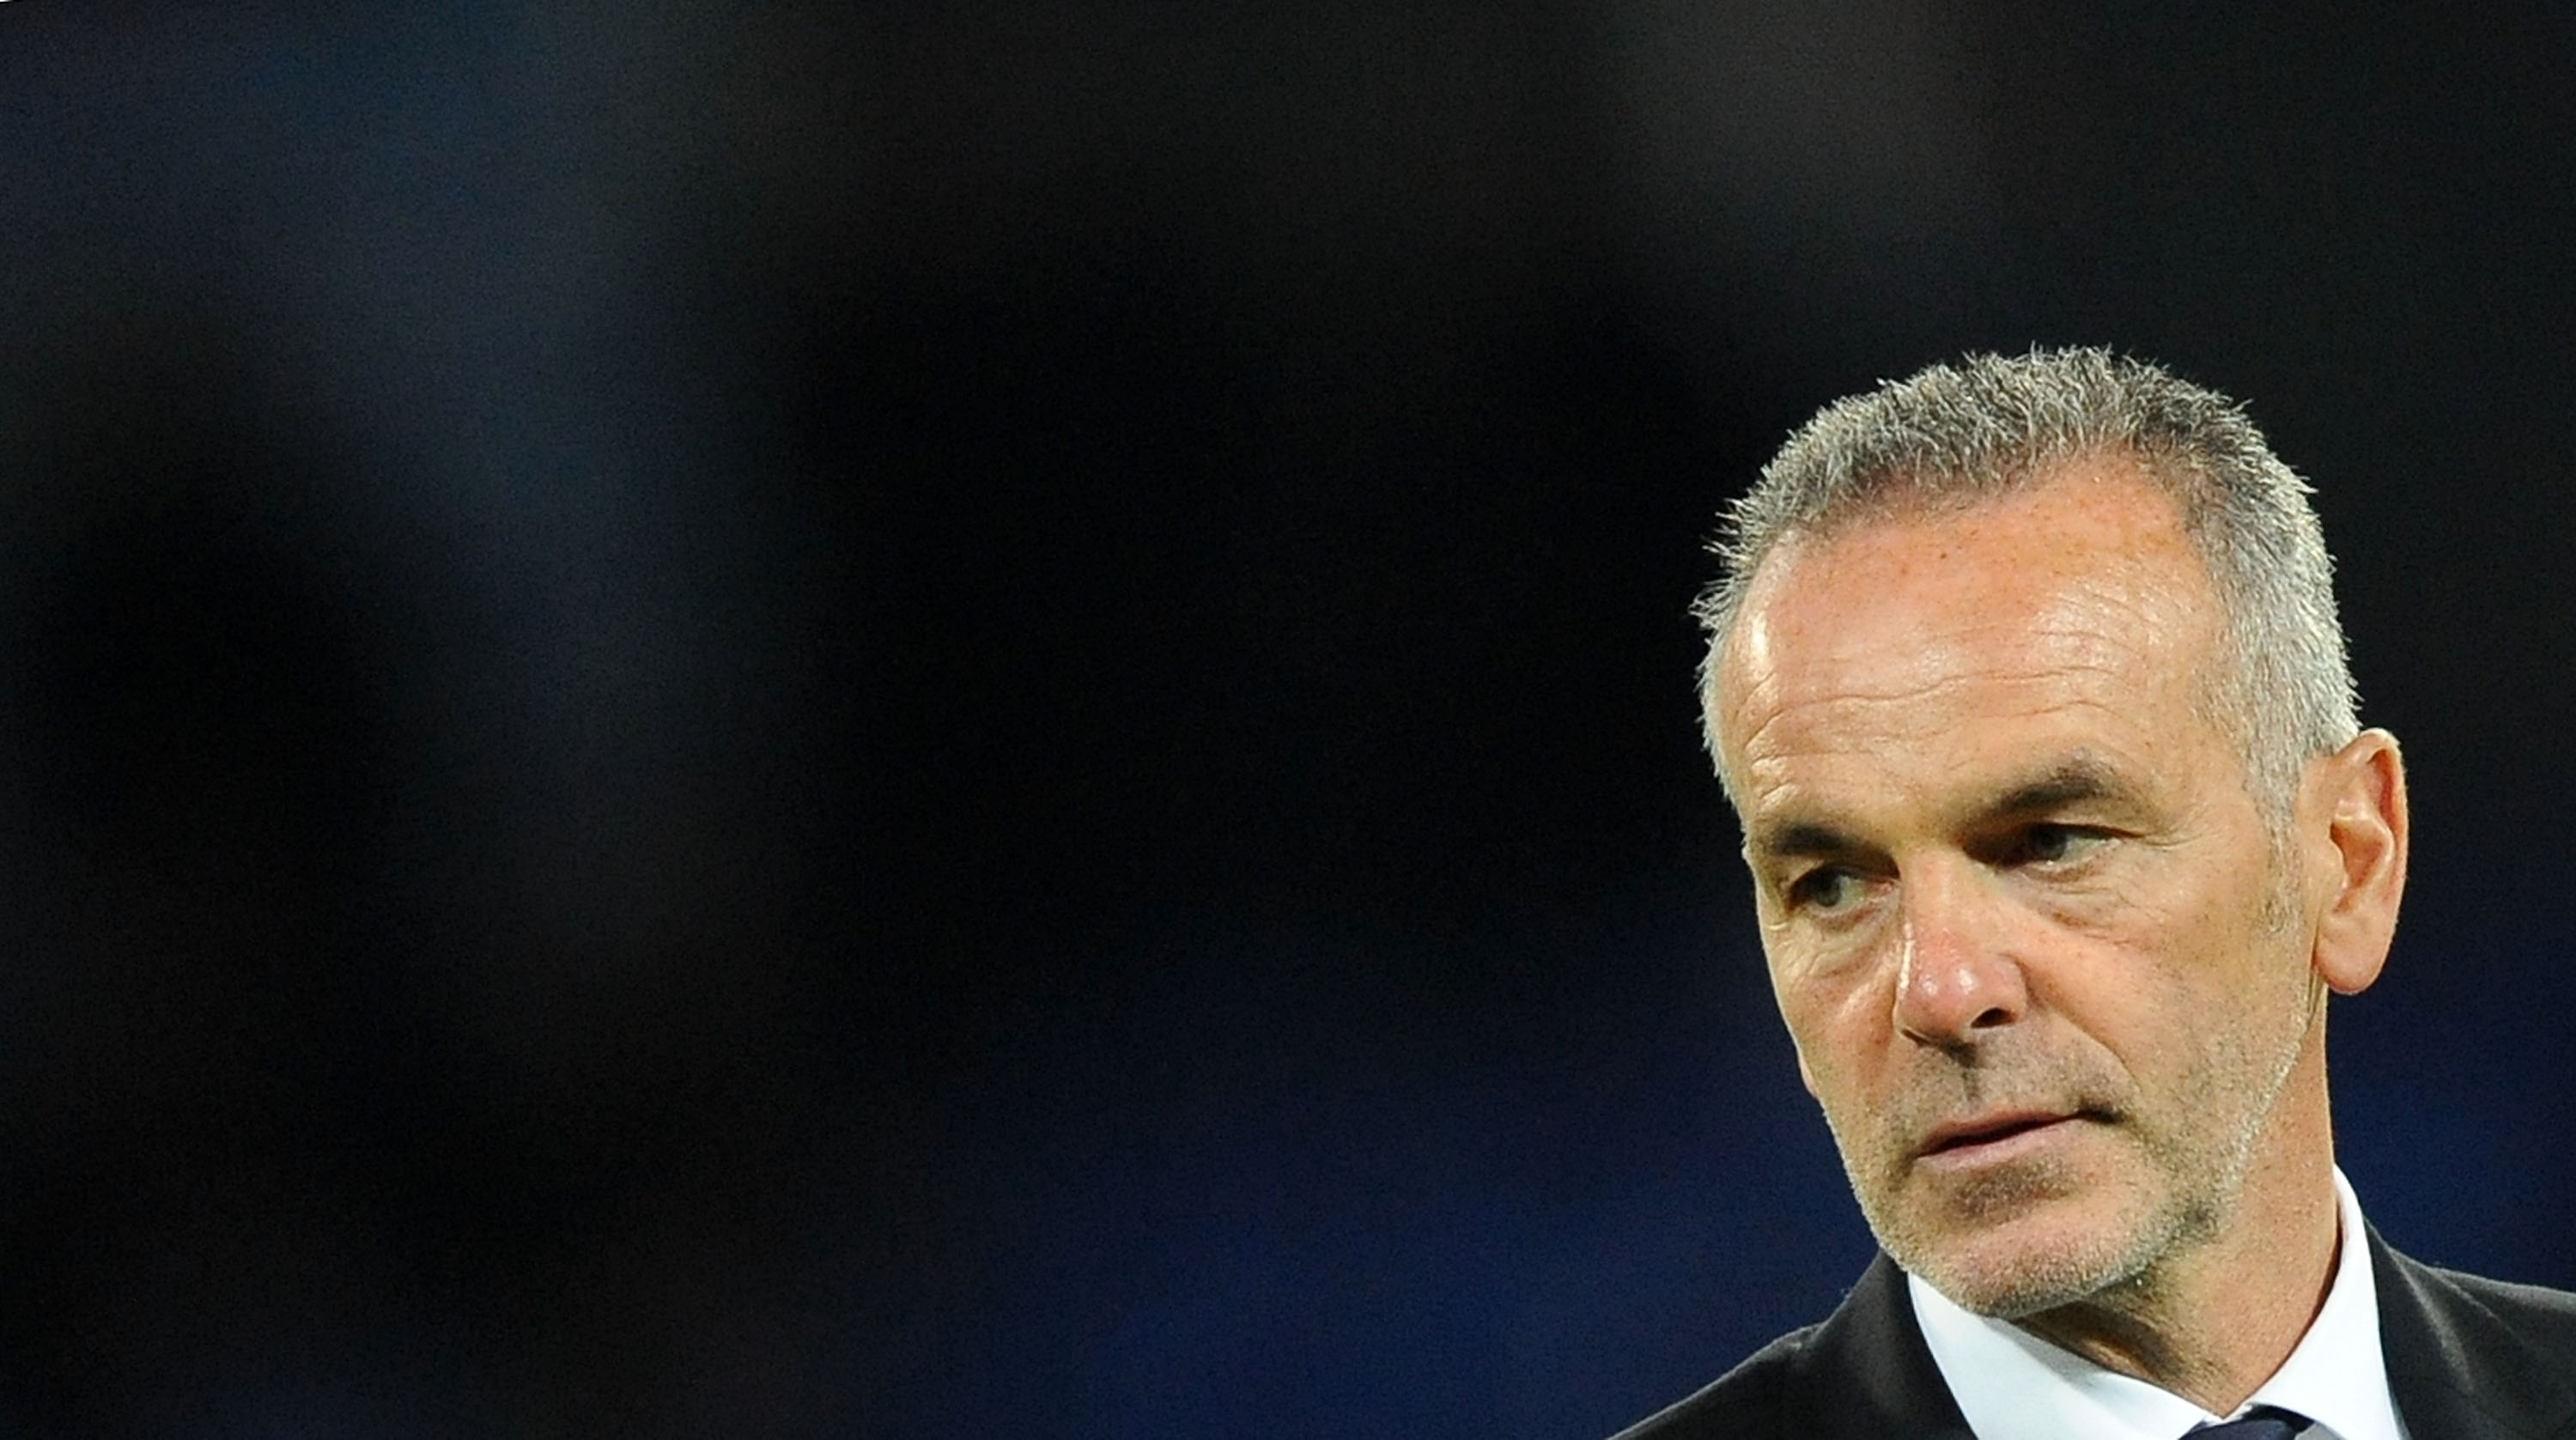 NAPLES, ITALY - APRIL 8: Lazio's coach Stefano Pioli looks on before the Tim cup match between SSC Napoli and SS Lazio at the San Paolo Stadium on APRIL 8, 2015 in Naples, Italy. (Photo by Francesco Pecoraro/Getty Images)